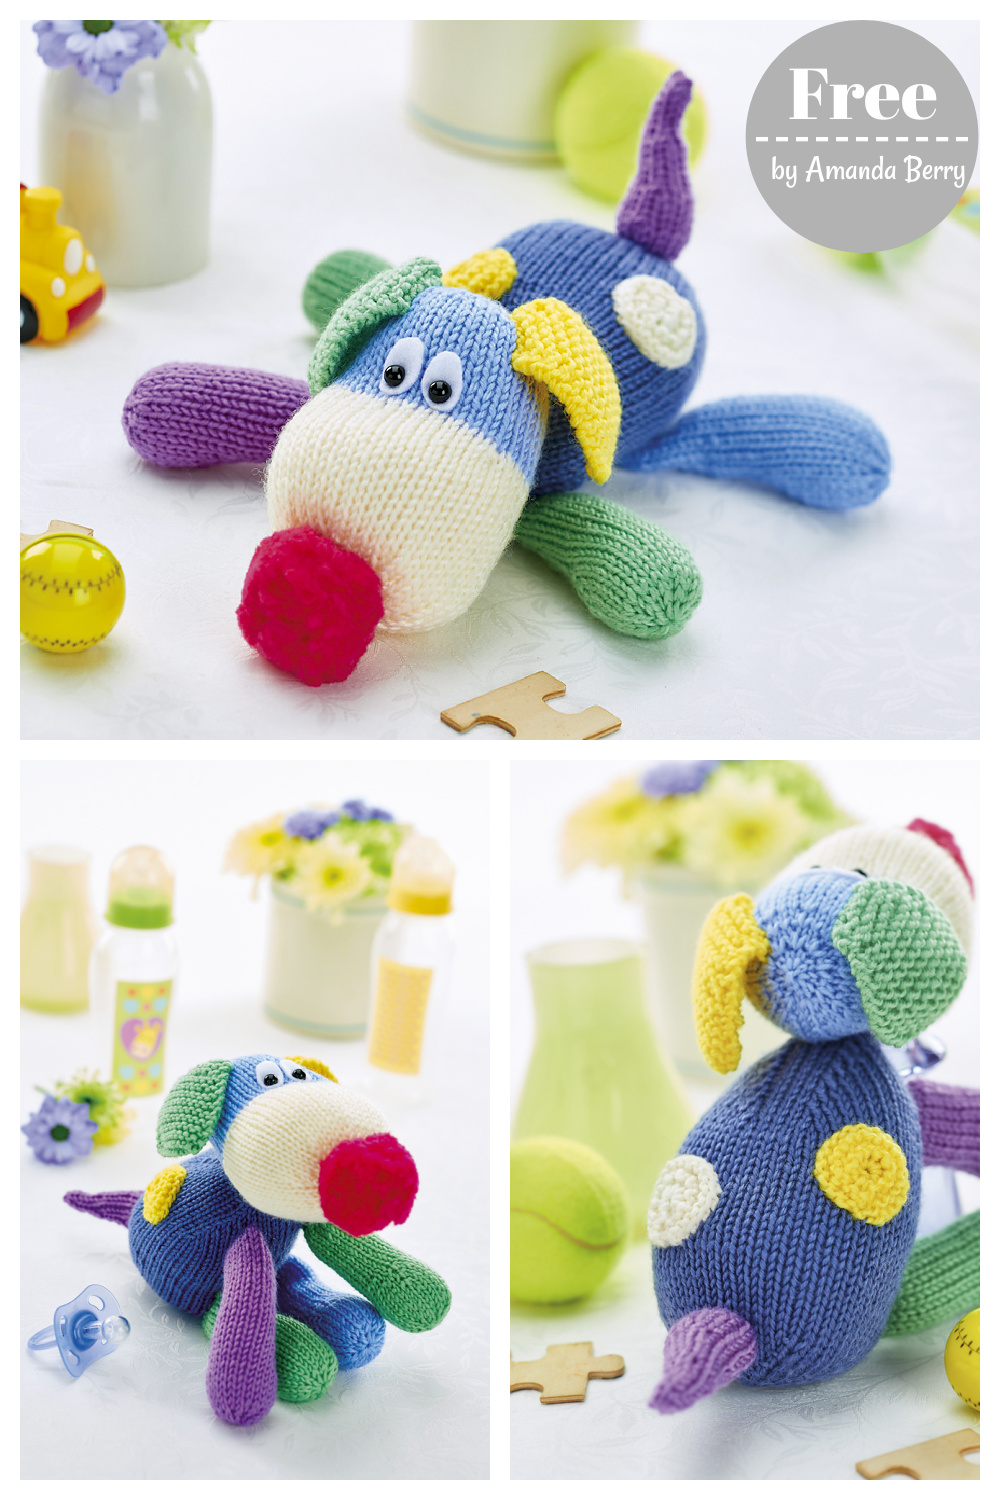 Patch the Puppy Free Knitting Pattern